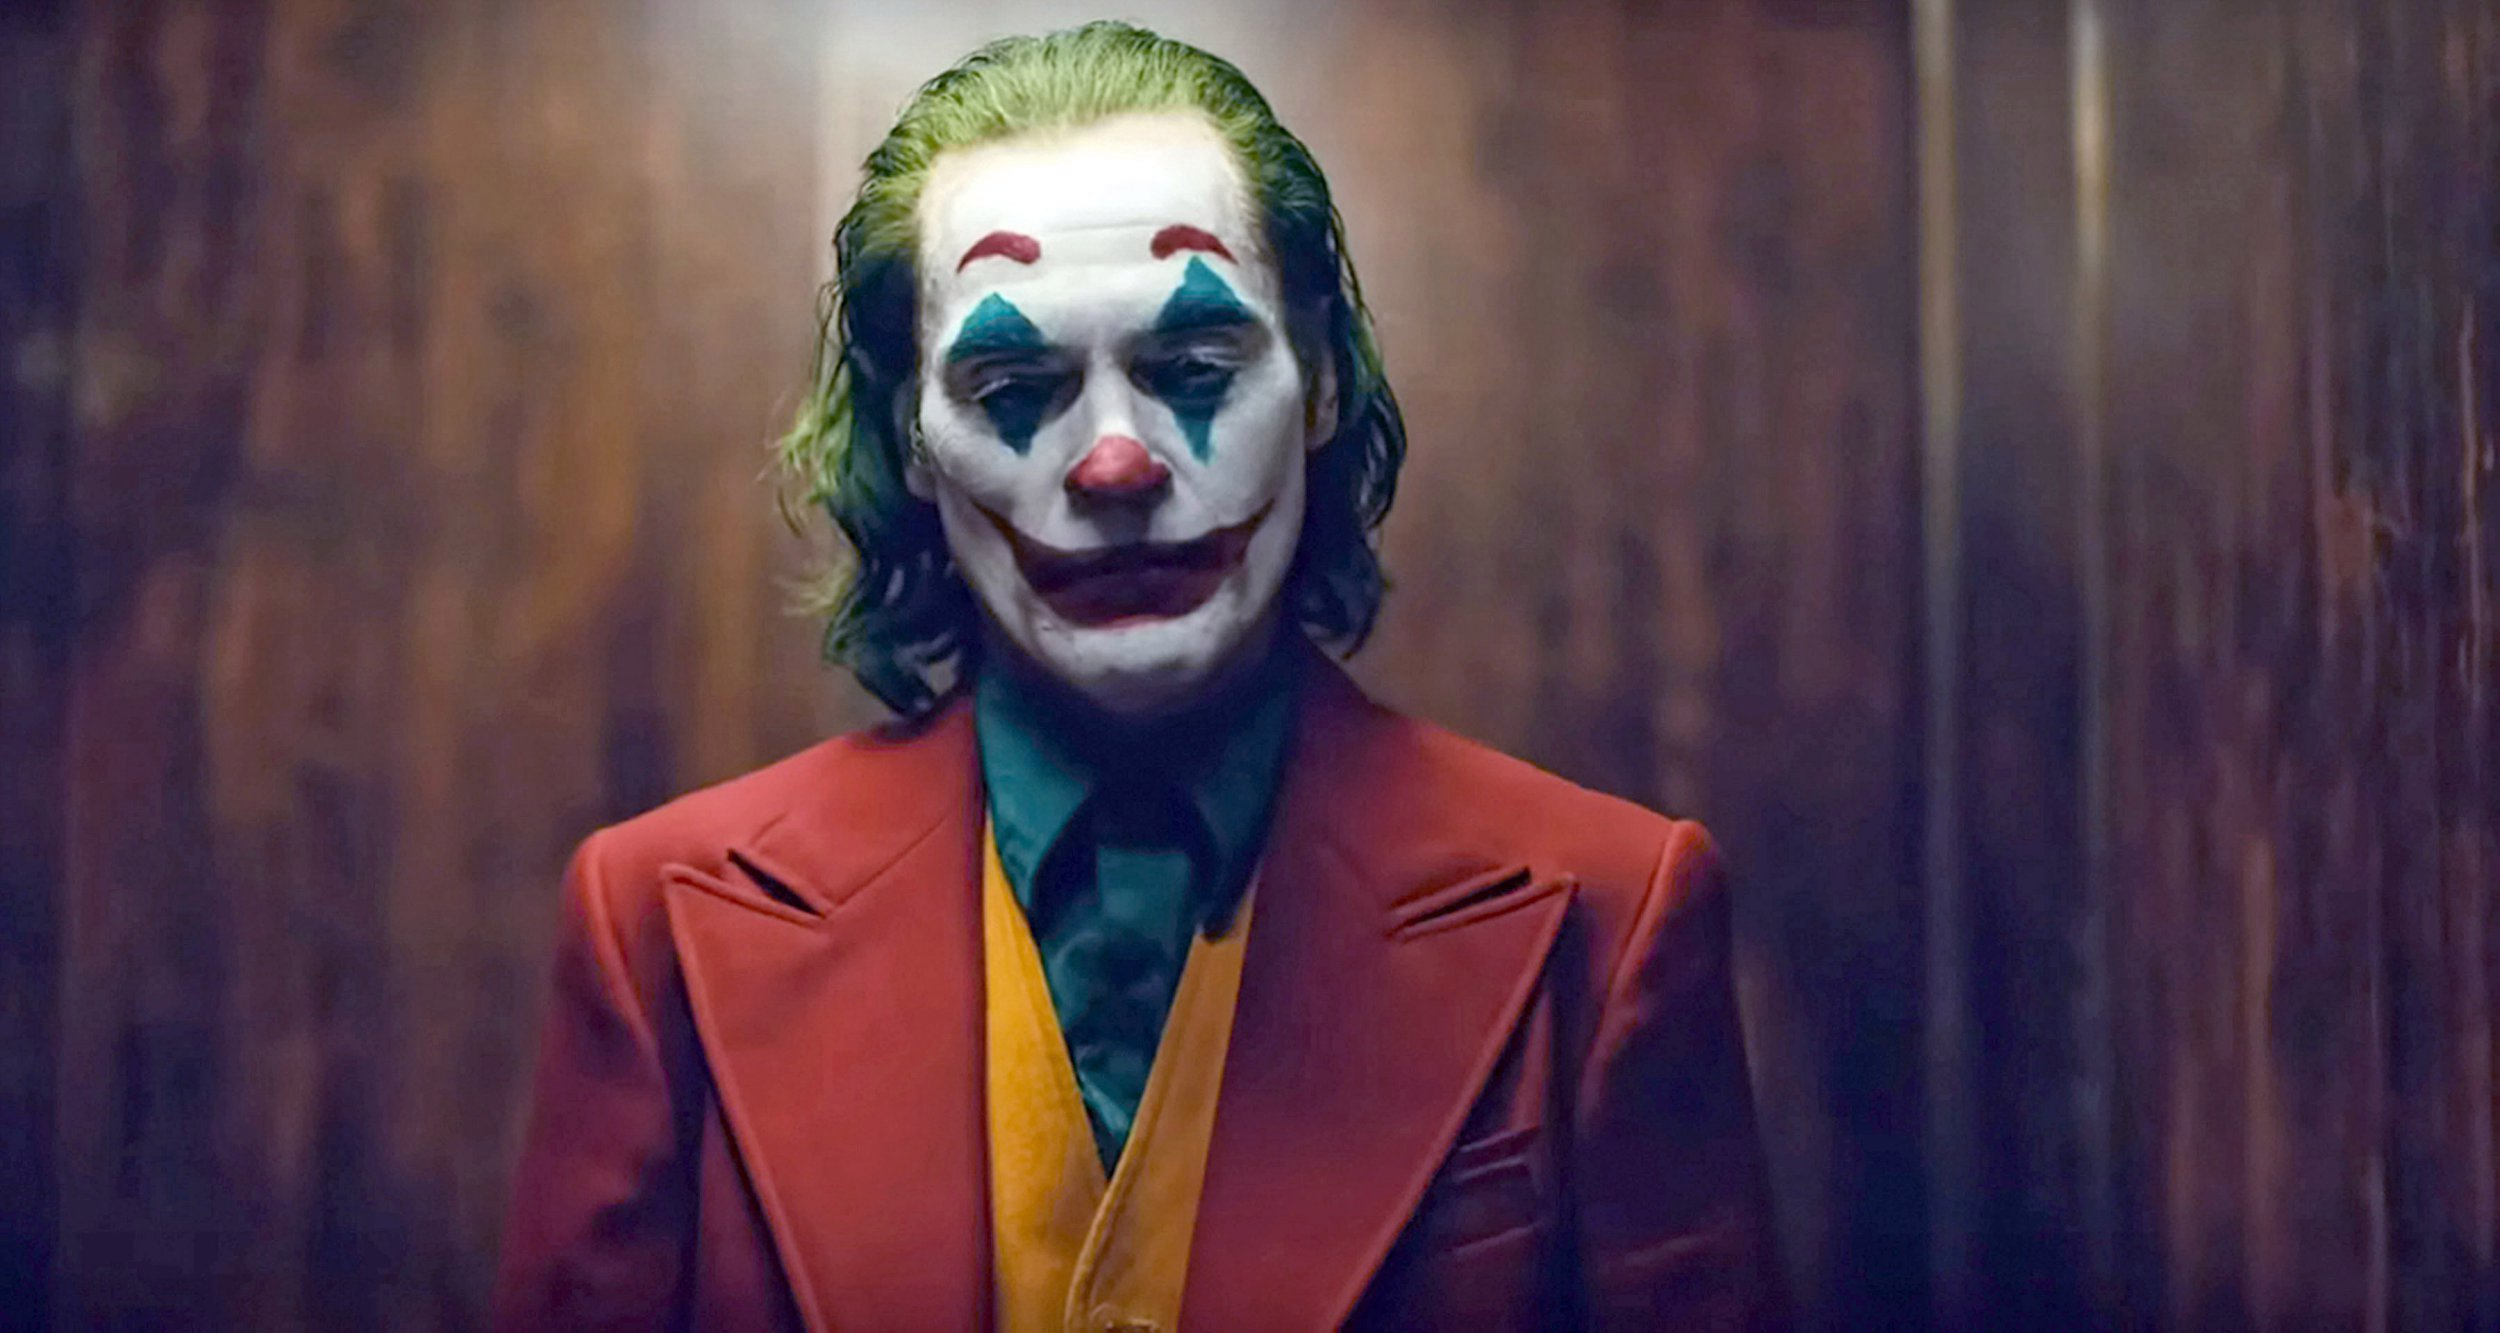 Halloween 2020 Ending Changed The Joker' Alternate Ending Almost Changed The DC Universe